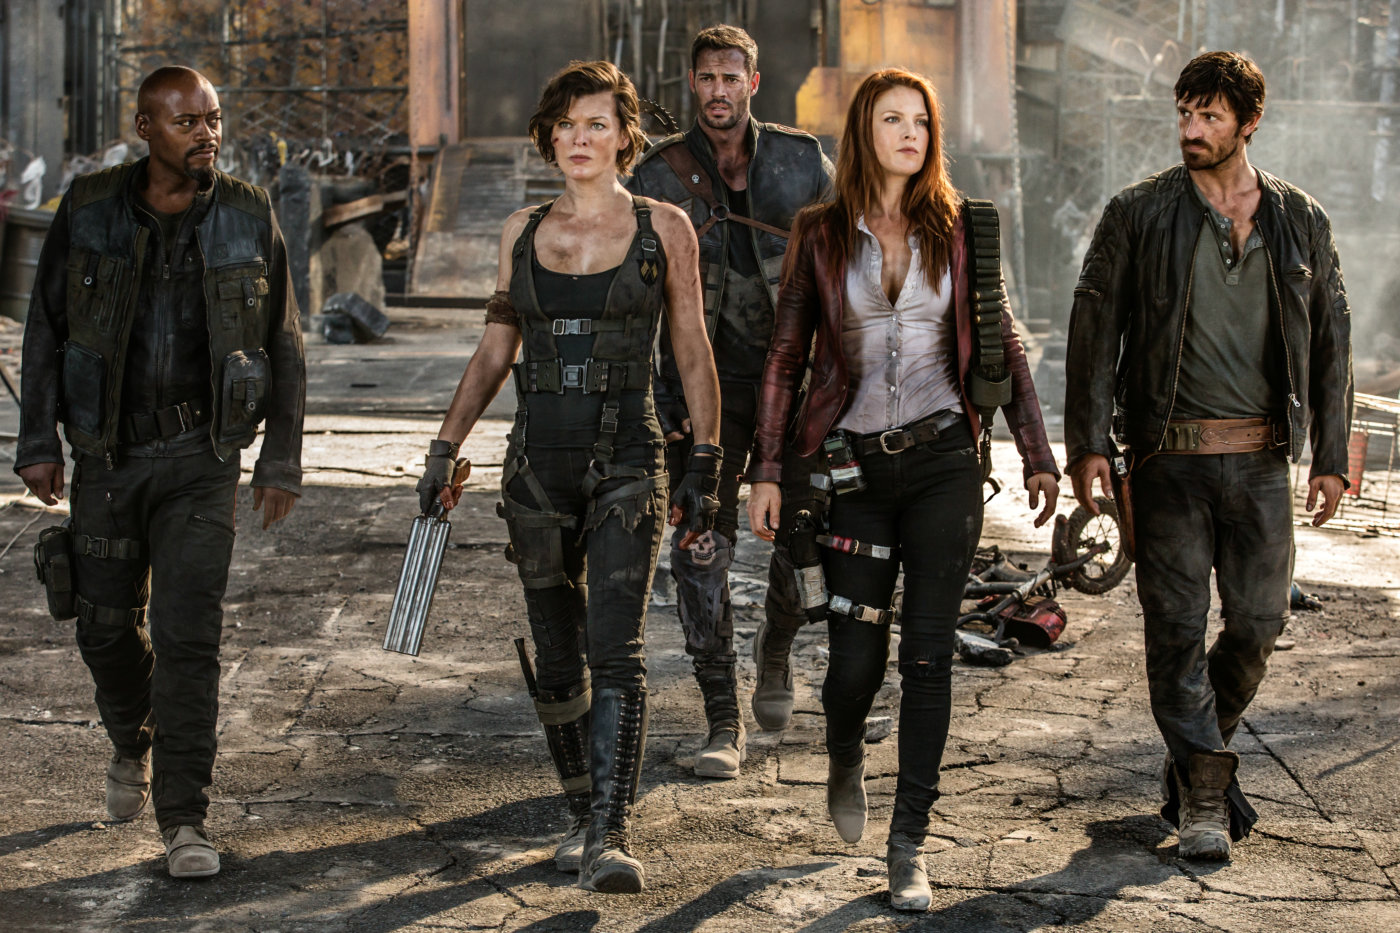 New Pics To Resident Evil The Final Chapter Blackfilm Com